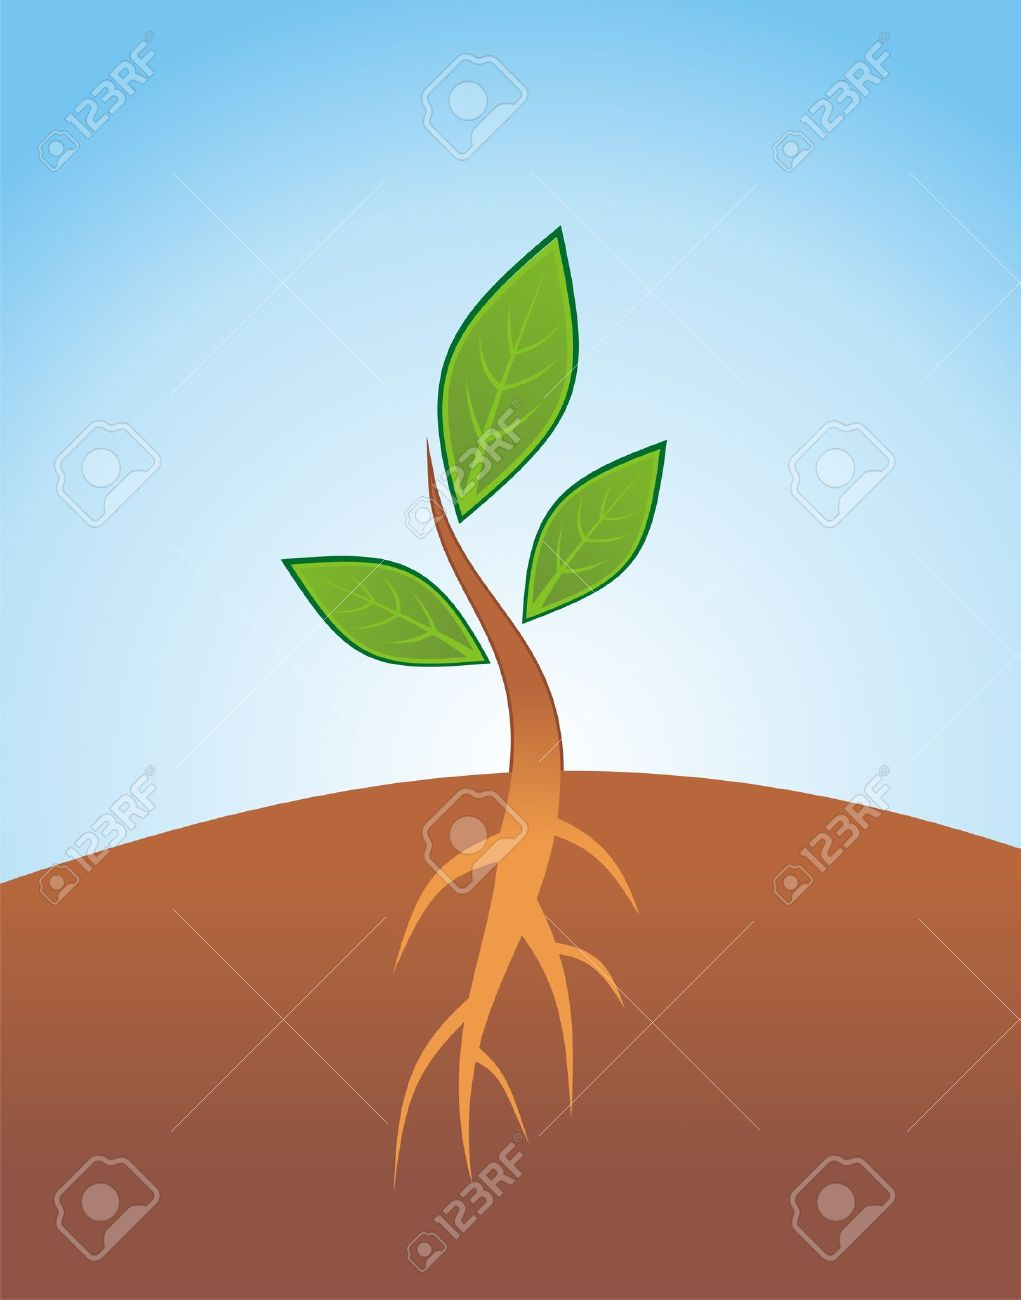 Seeds clipart little plant On Netzrim Sprouts